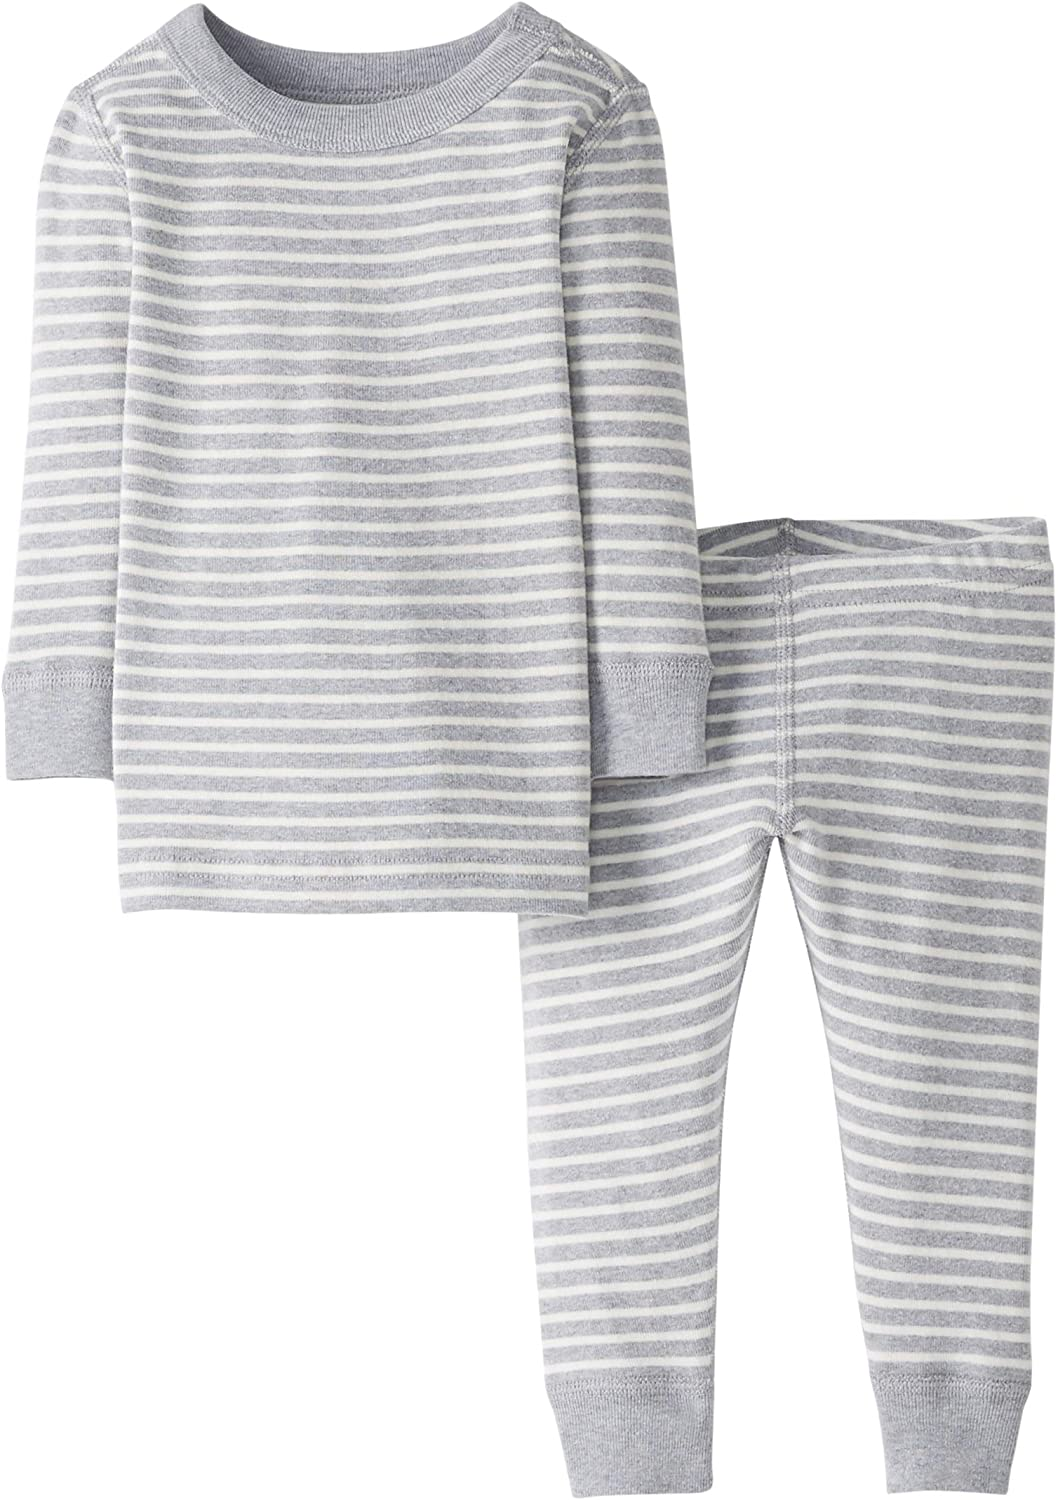 2T Gray Stripe Moon and Back by Hanna Andersson Baby//Kleinkind Schlafanzug-Set 2-teilig